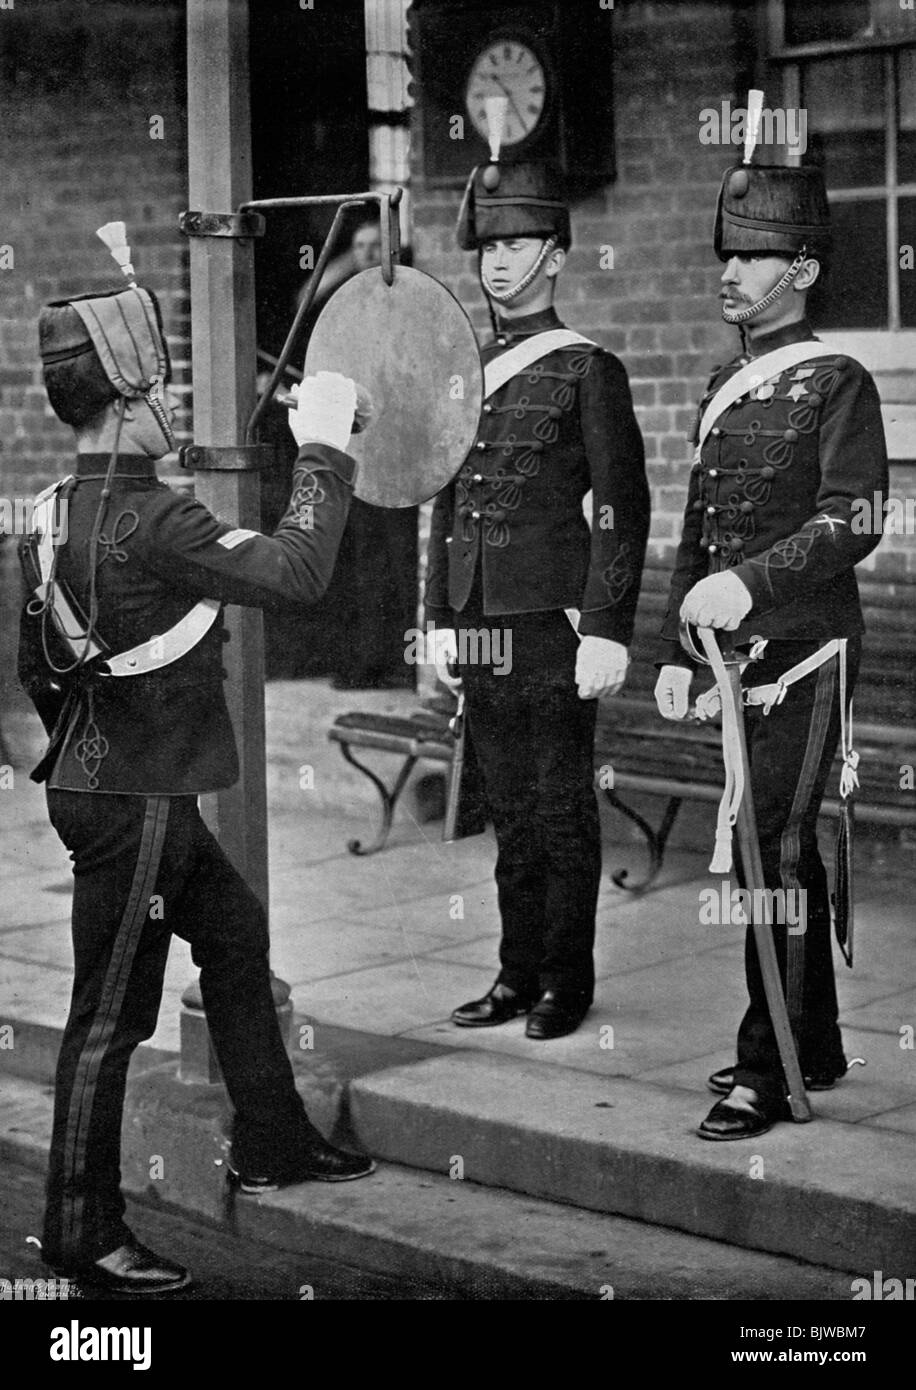 Striking the gong at the main gate of the Aldershot cavalry barracks, Hampshire, 1896. Stock Photo